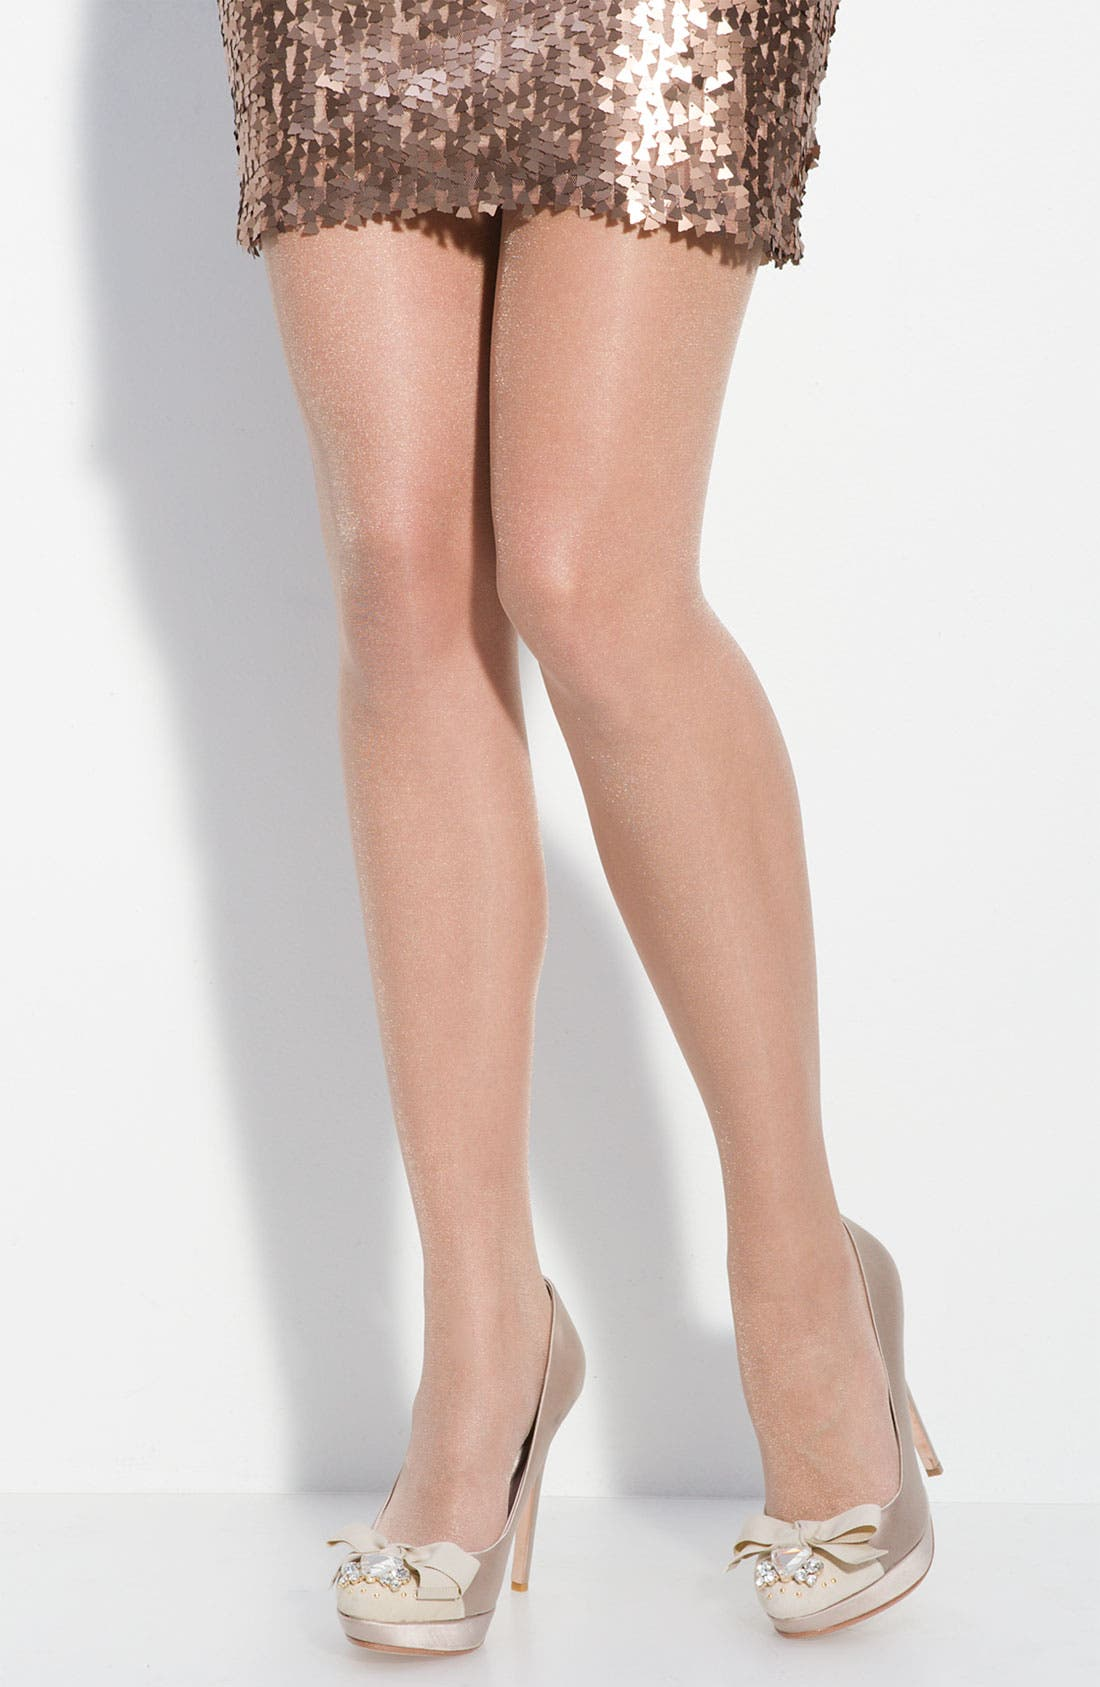 Alternate Image 1 Selected - Calvin Klein 'Shimmer' Sheer Control Top Pantyhose